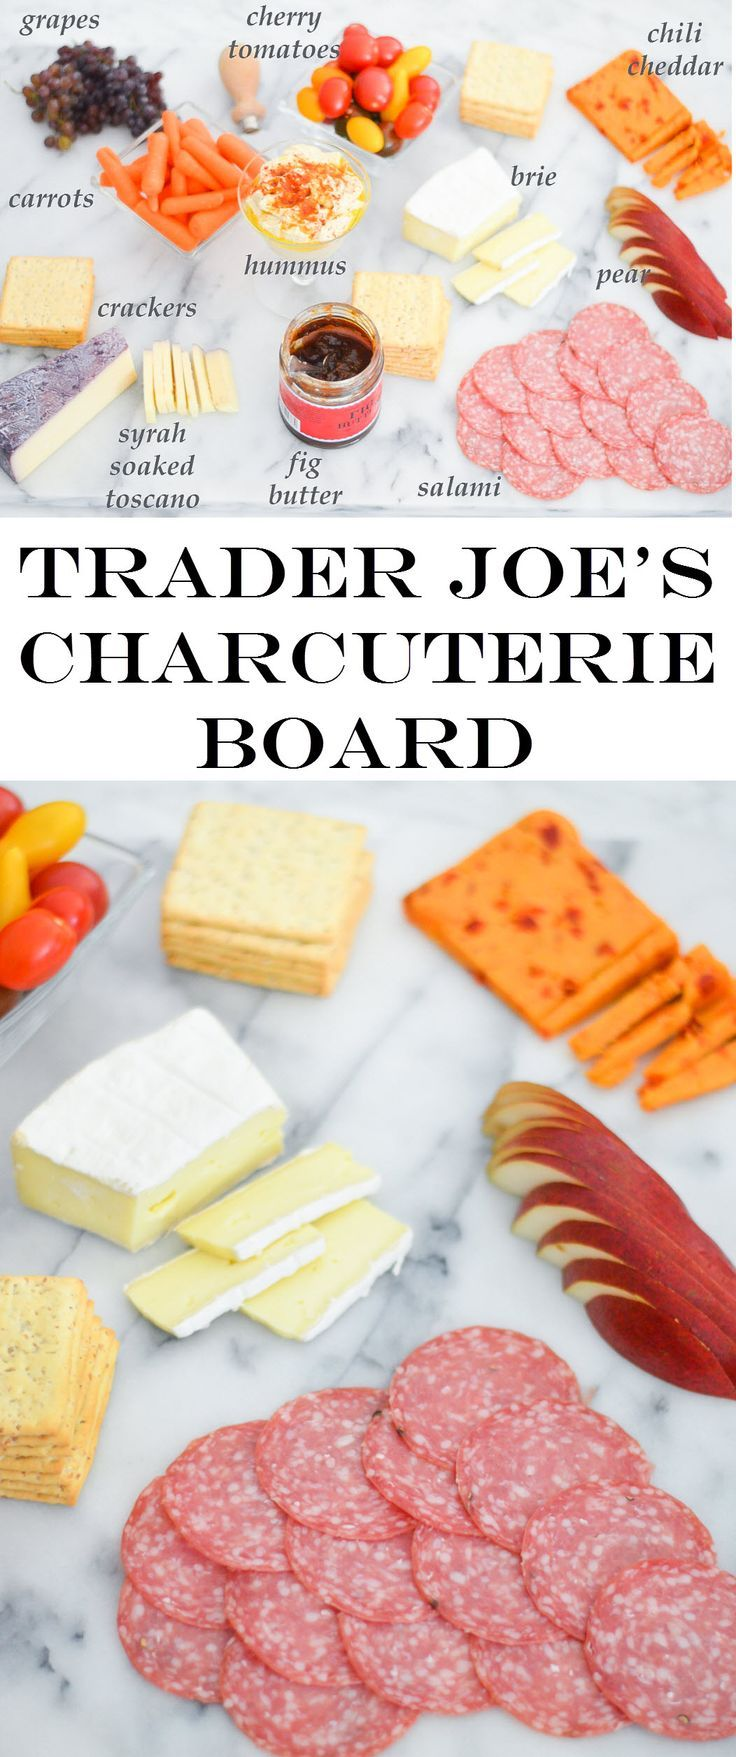 Dinner Party Ideas For 6 Part - 23: Trader Joeu0027s Charcuterie Board Shopping List For Less Than $30. Appetizers  For 10 Or Dinner